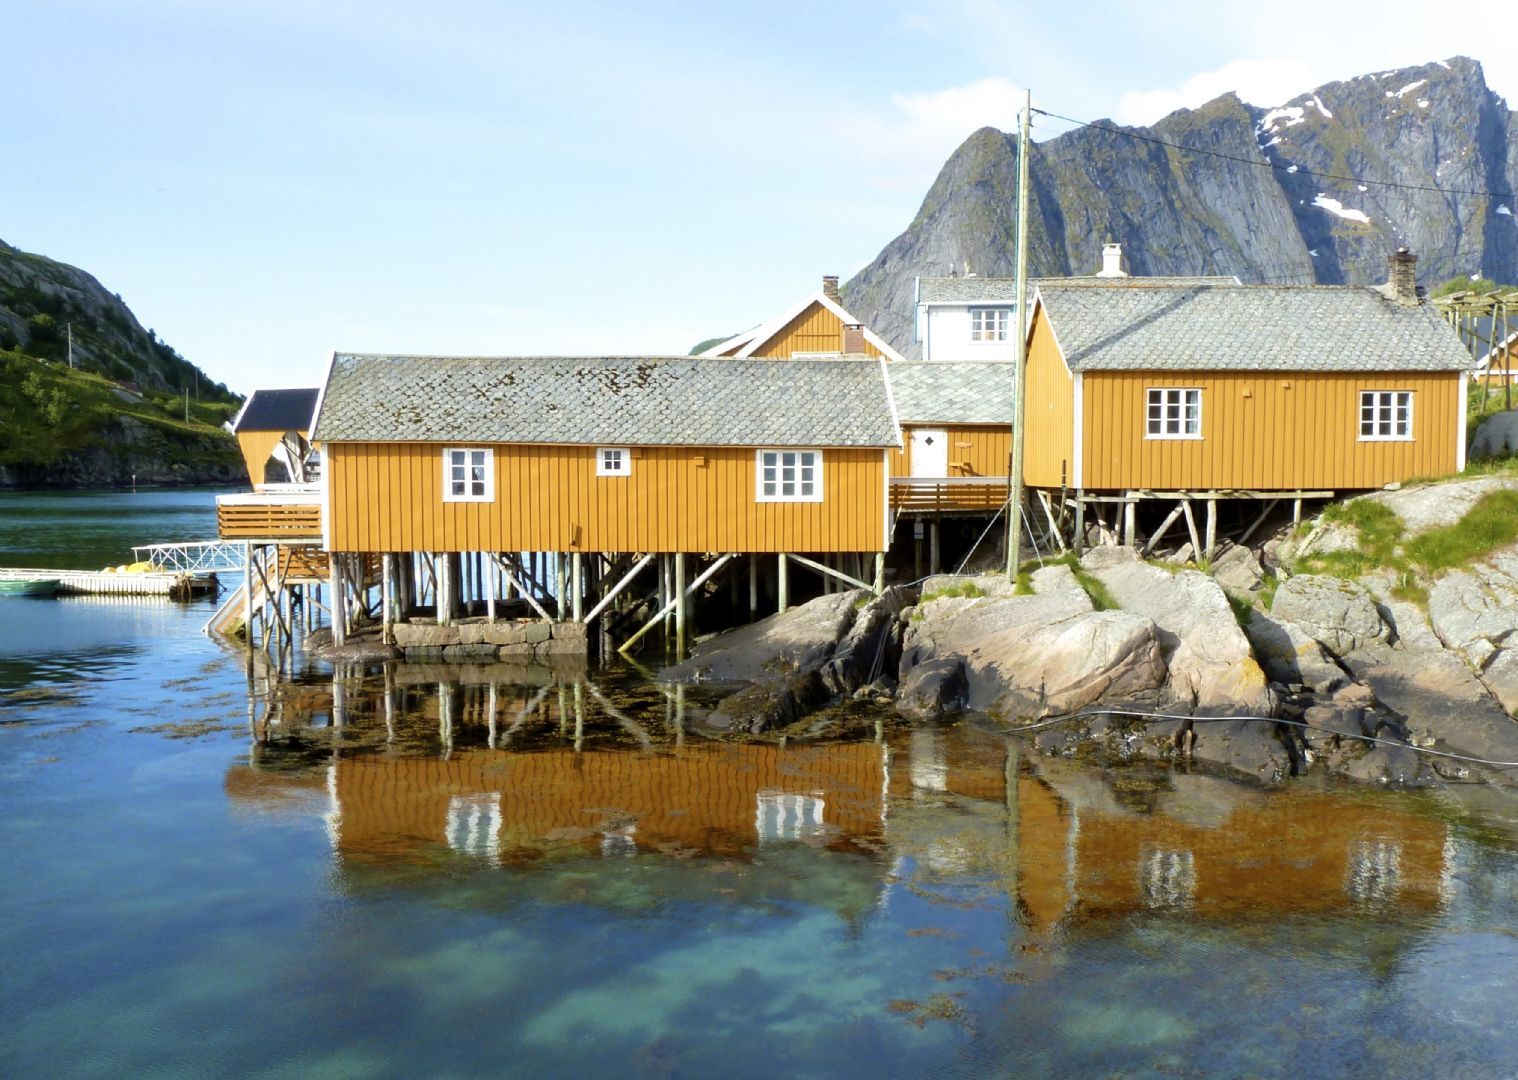 norwayfamilycycling.jpg - Norway - Lofoten Islands - Biking with Vikings - Self-Guided Family Cycling Holiday - Family Cycling